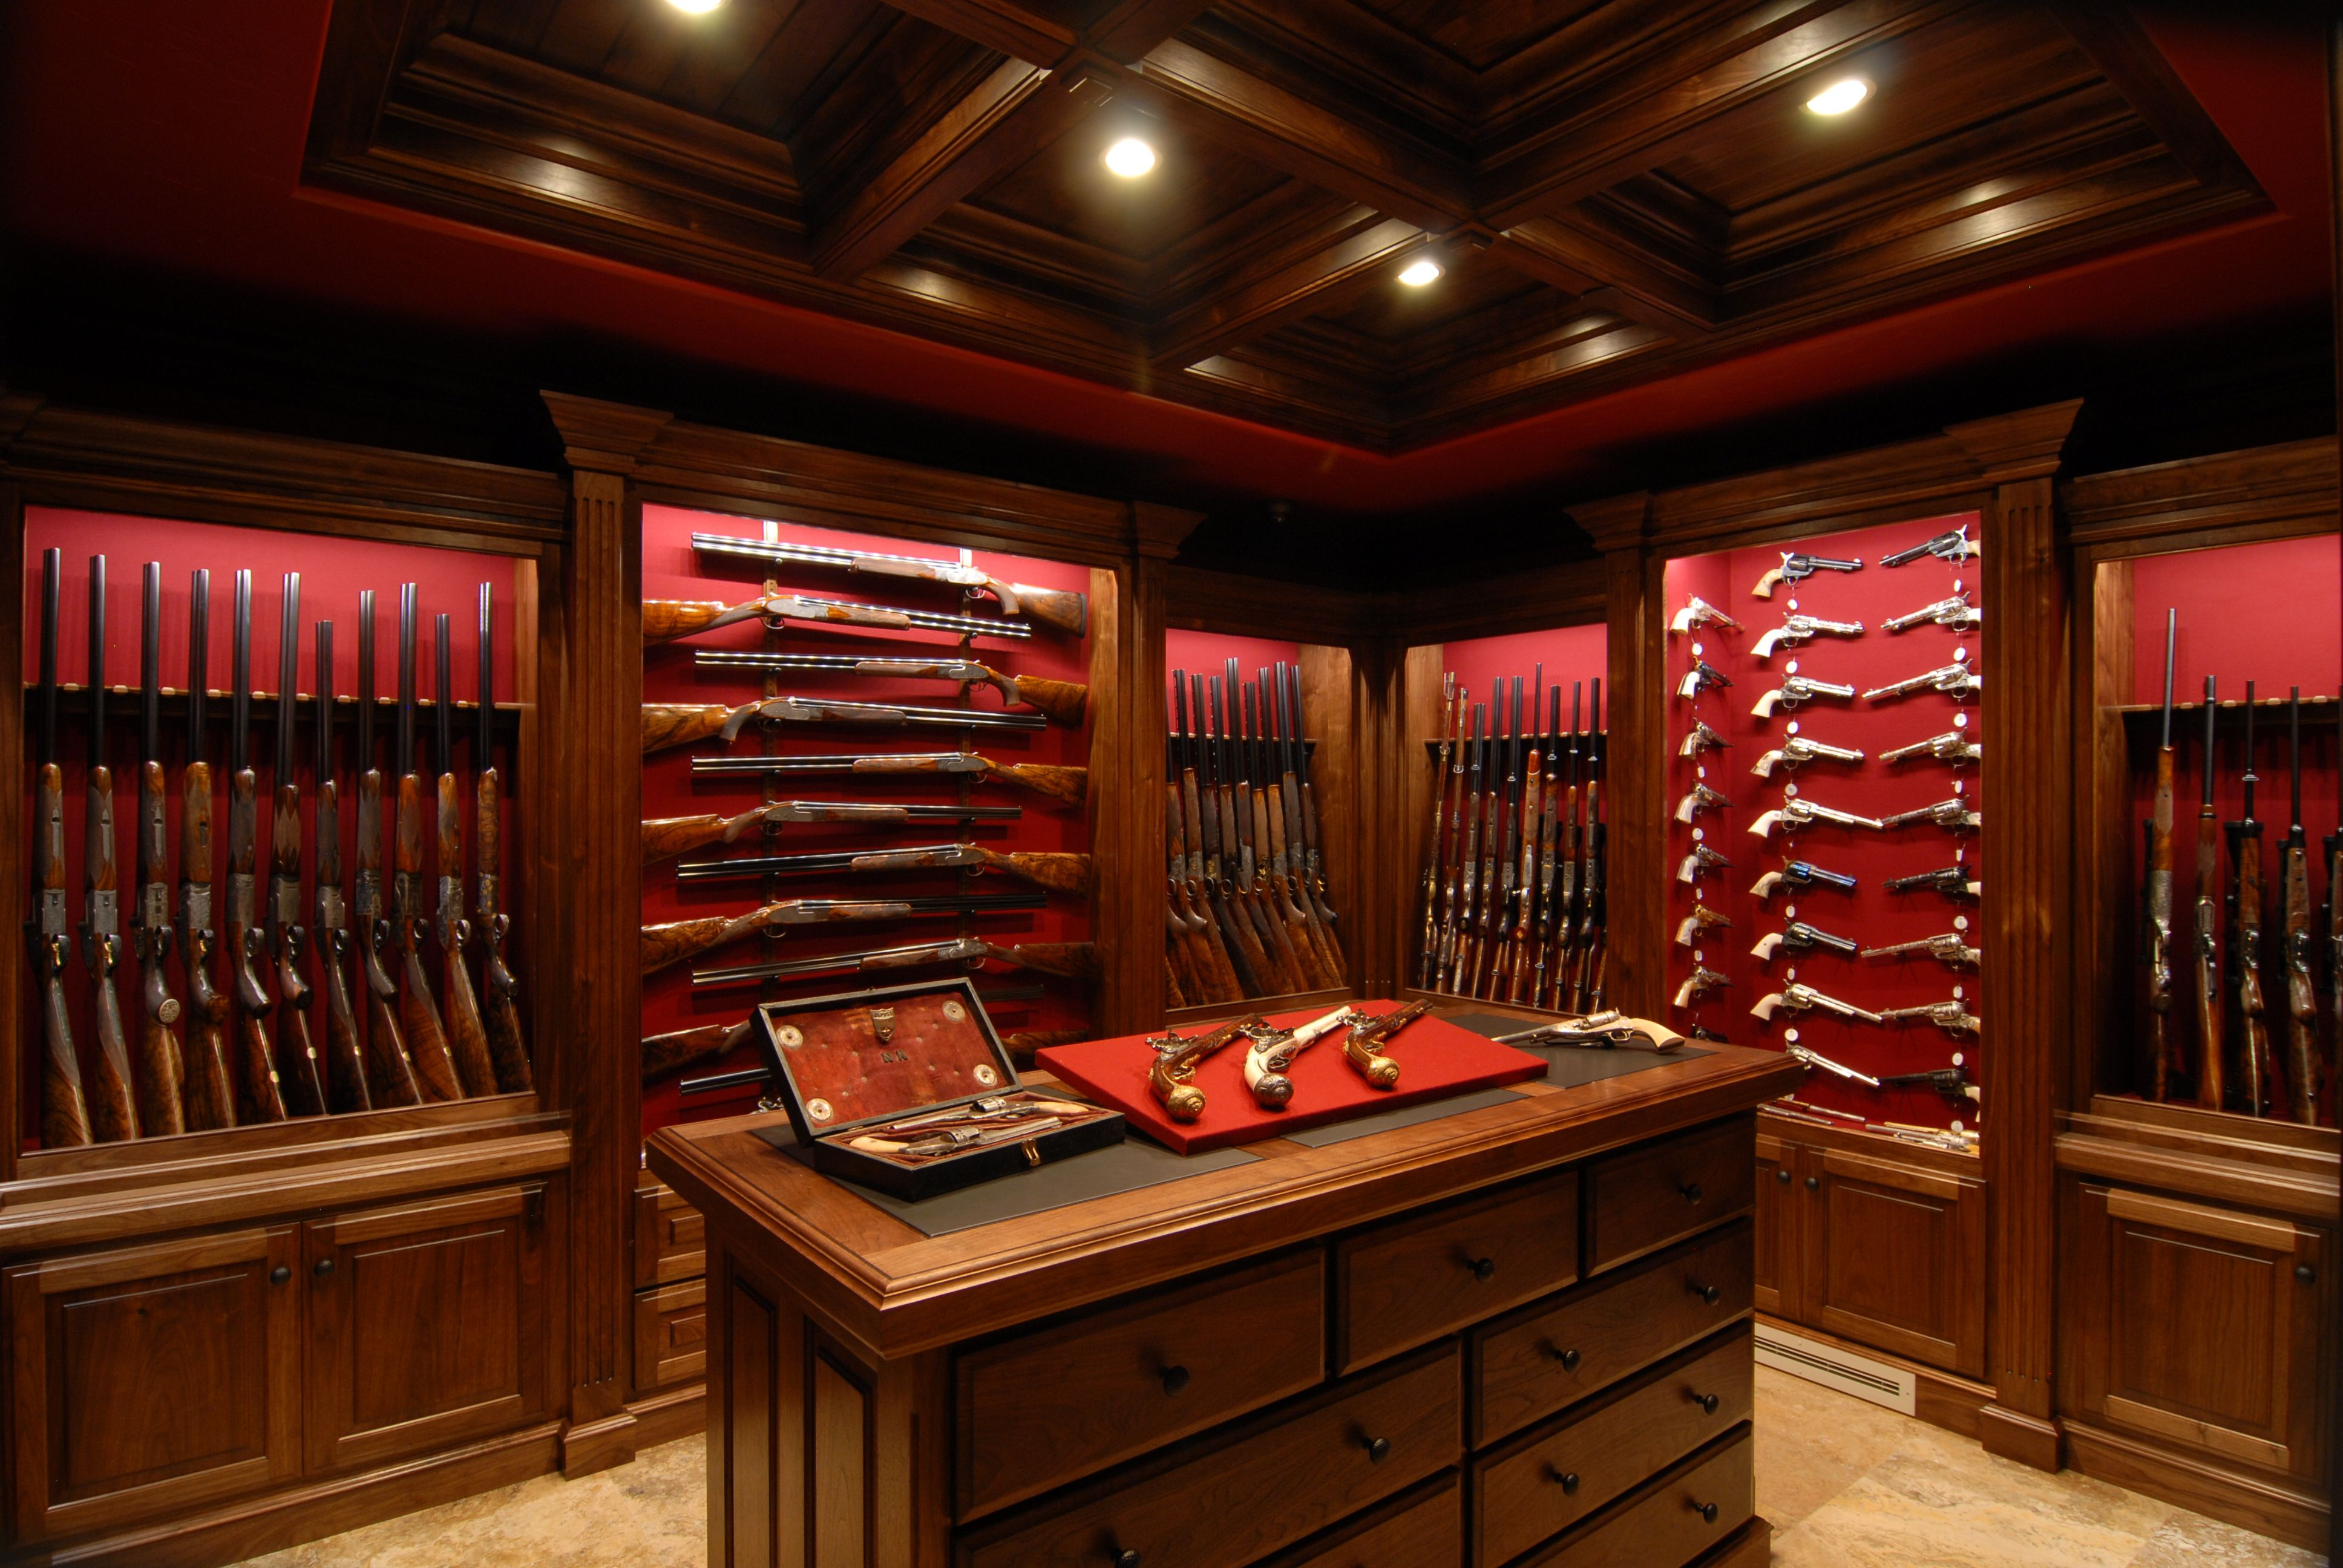 Gun room amp trophy room done hunting - Amusing Gun Cabinet Ideas For Wonderful Look Of House Interior Marevlous Traditional Home Office Design Interior Completed With Gun Cabinet